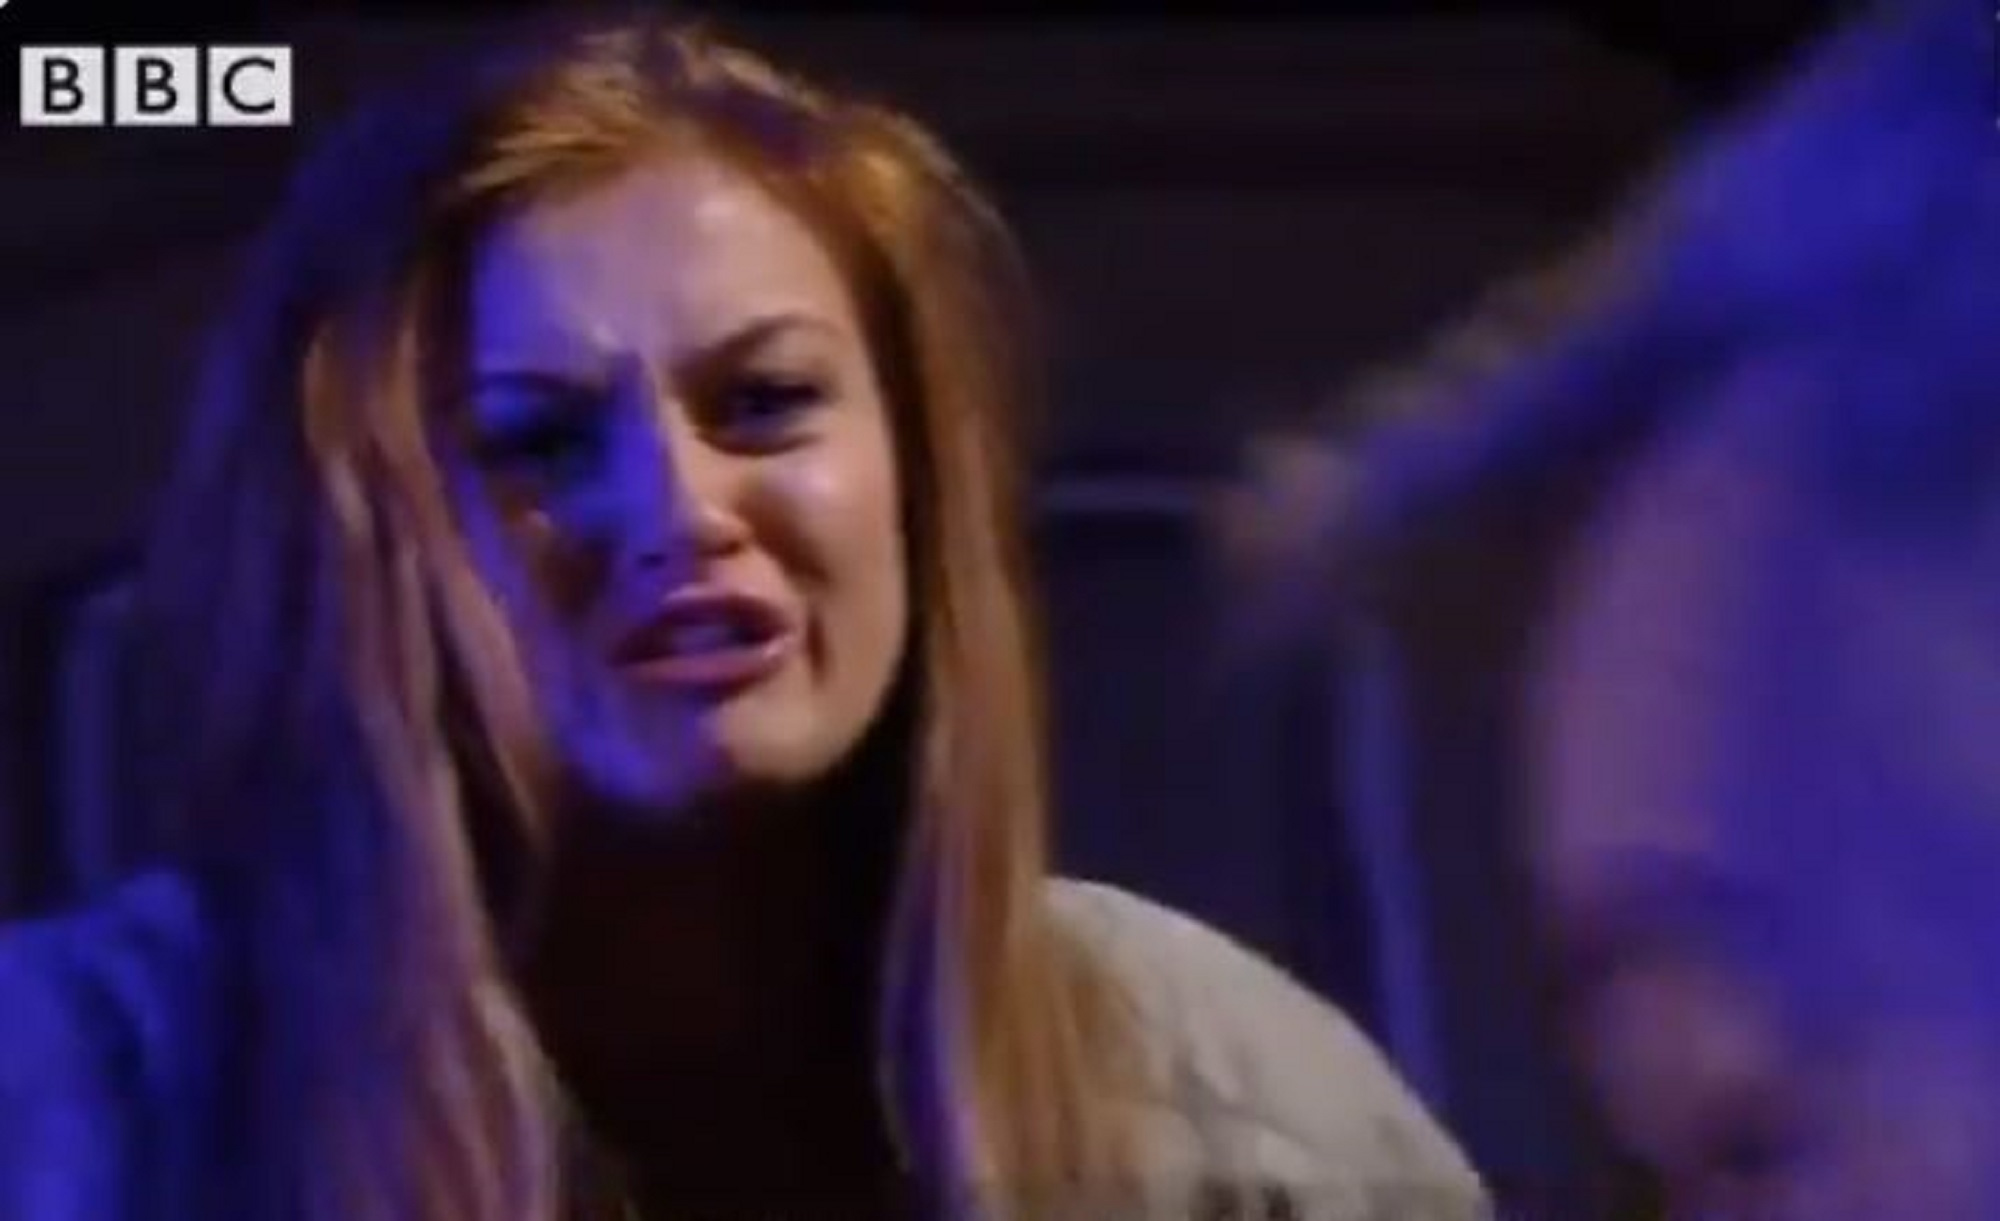 EastEnders: Explosive new trailer featuring arrests and Whitney's terror has fans desperate for their Monday night fix